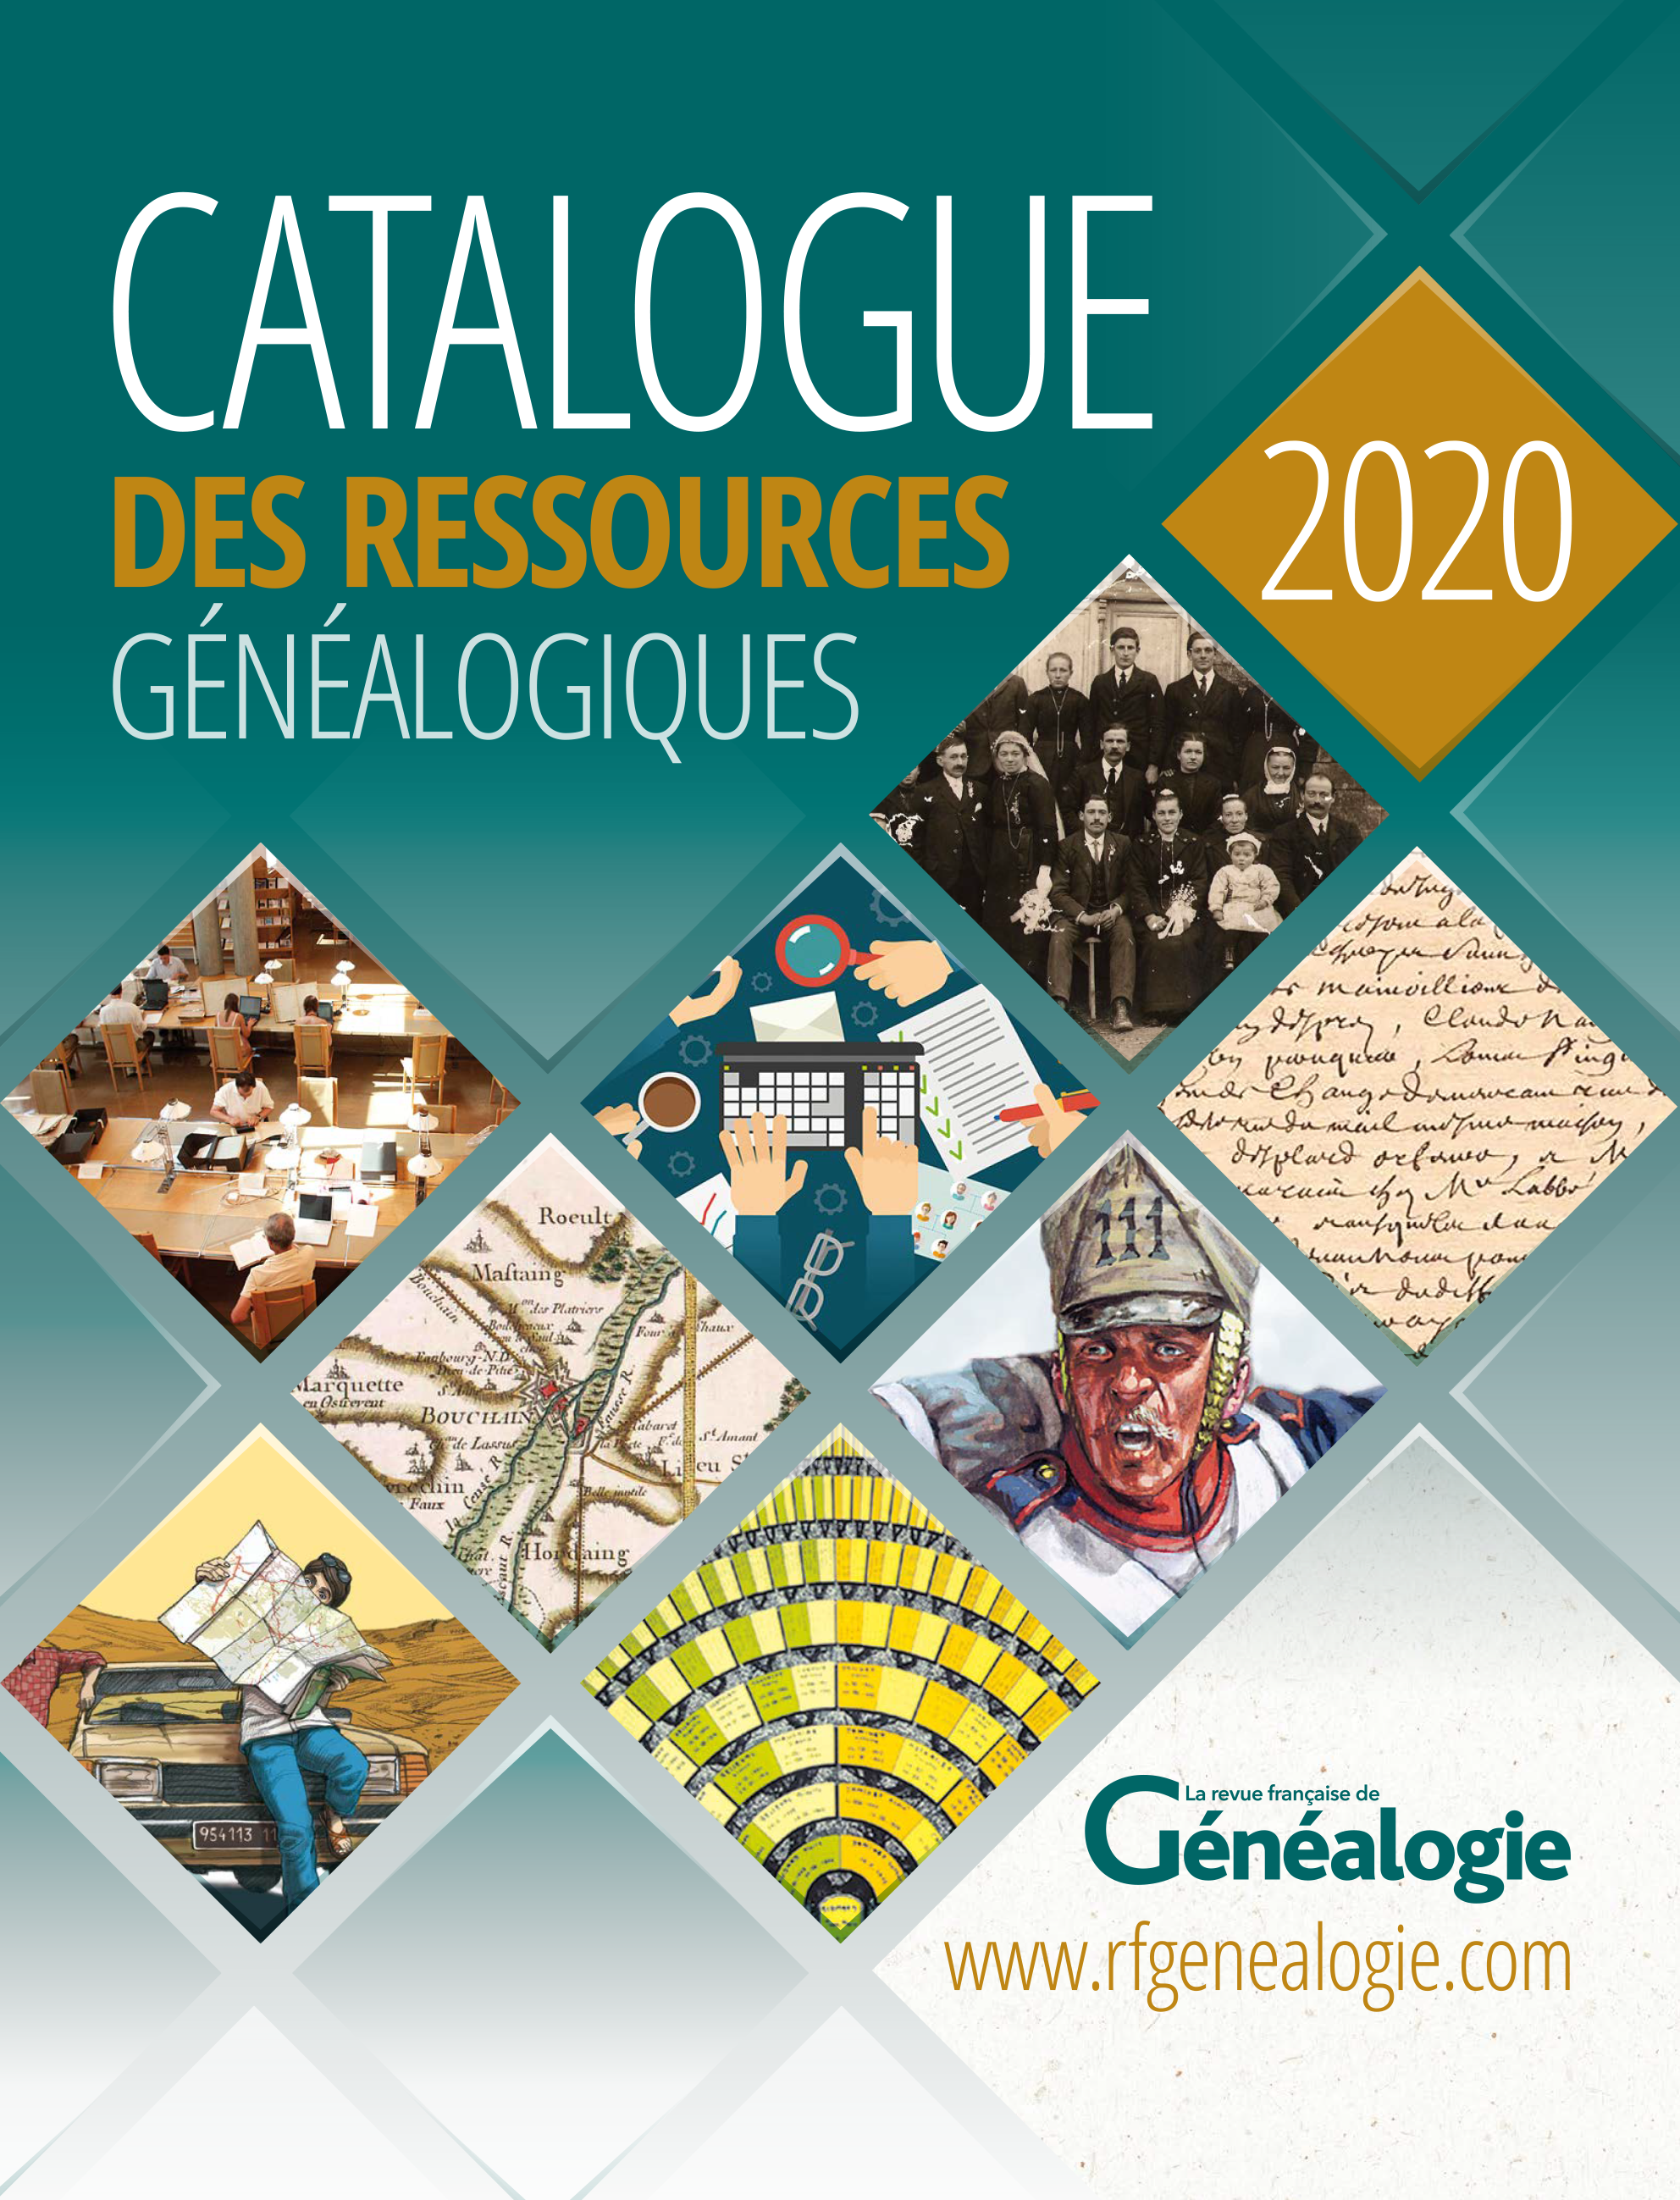 Catalogue RFG 2020